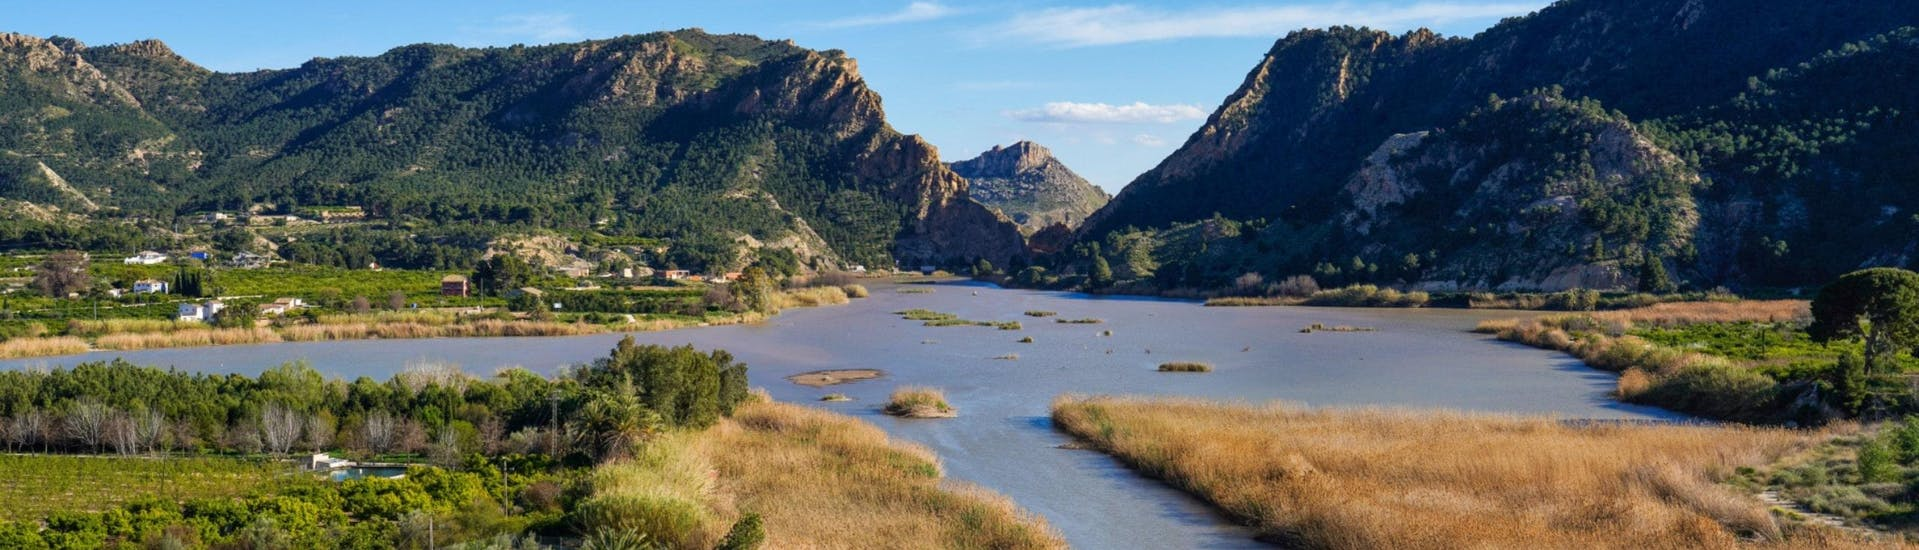 An image of the Ojor Reservoir along the Rio Segura, close to where people go rafting in Murcia.